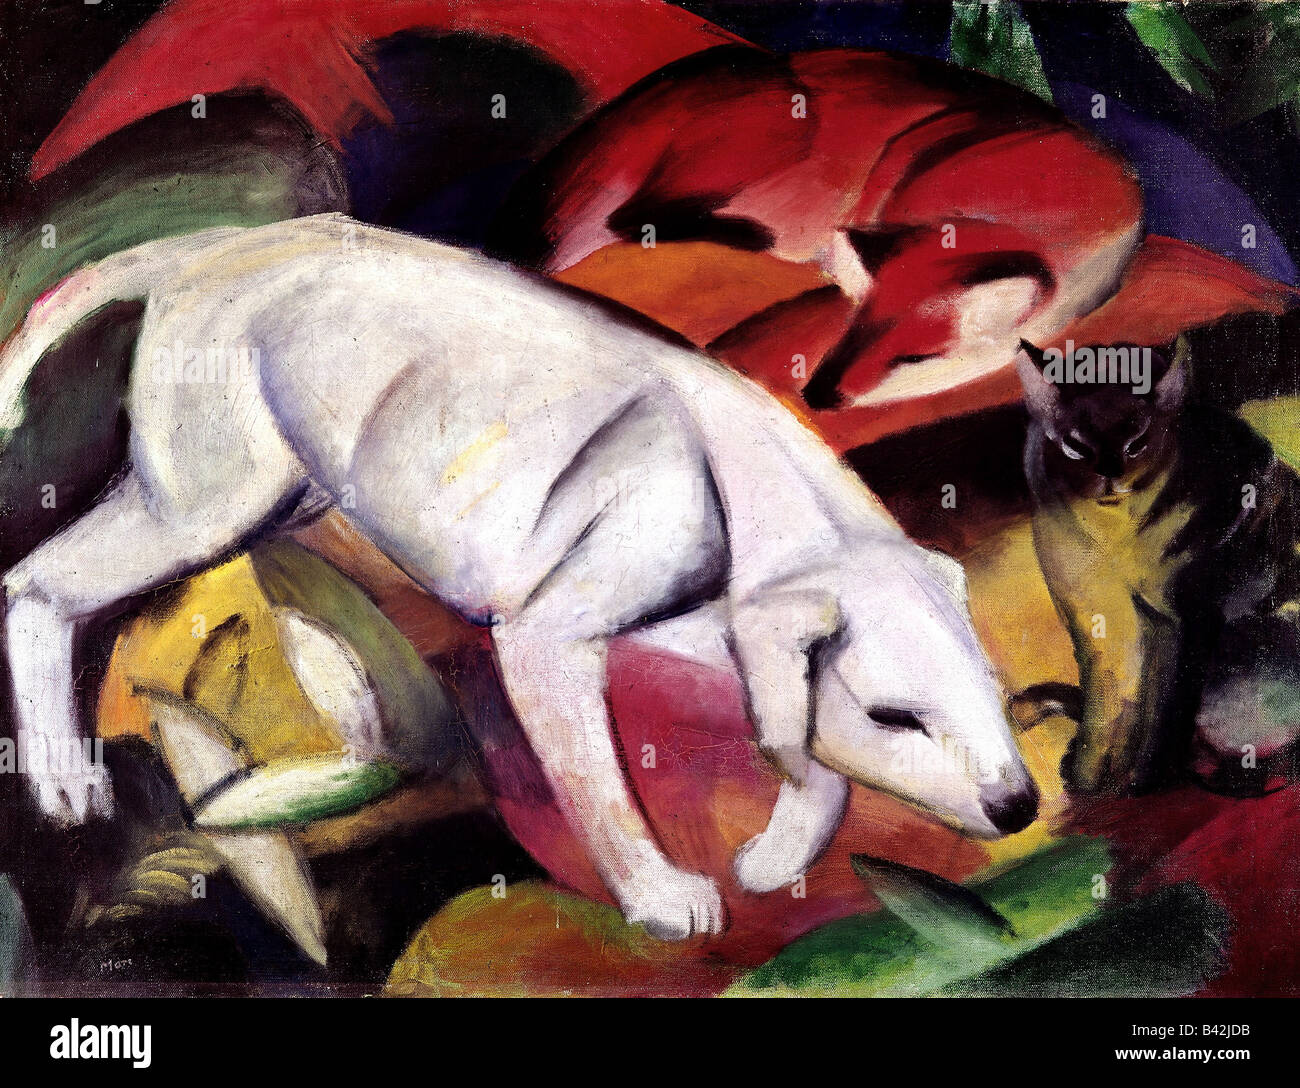 Belle arti, Marc Franz, 8.2.1880 - 4.3.1916, pittura, 'Dog, Fox e cat', (Hund, Fuchs und Katze), 1912, olio Immagini Stock